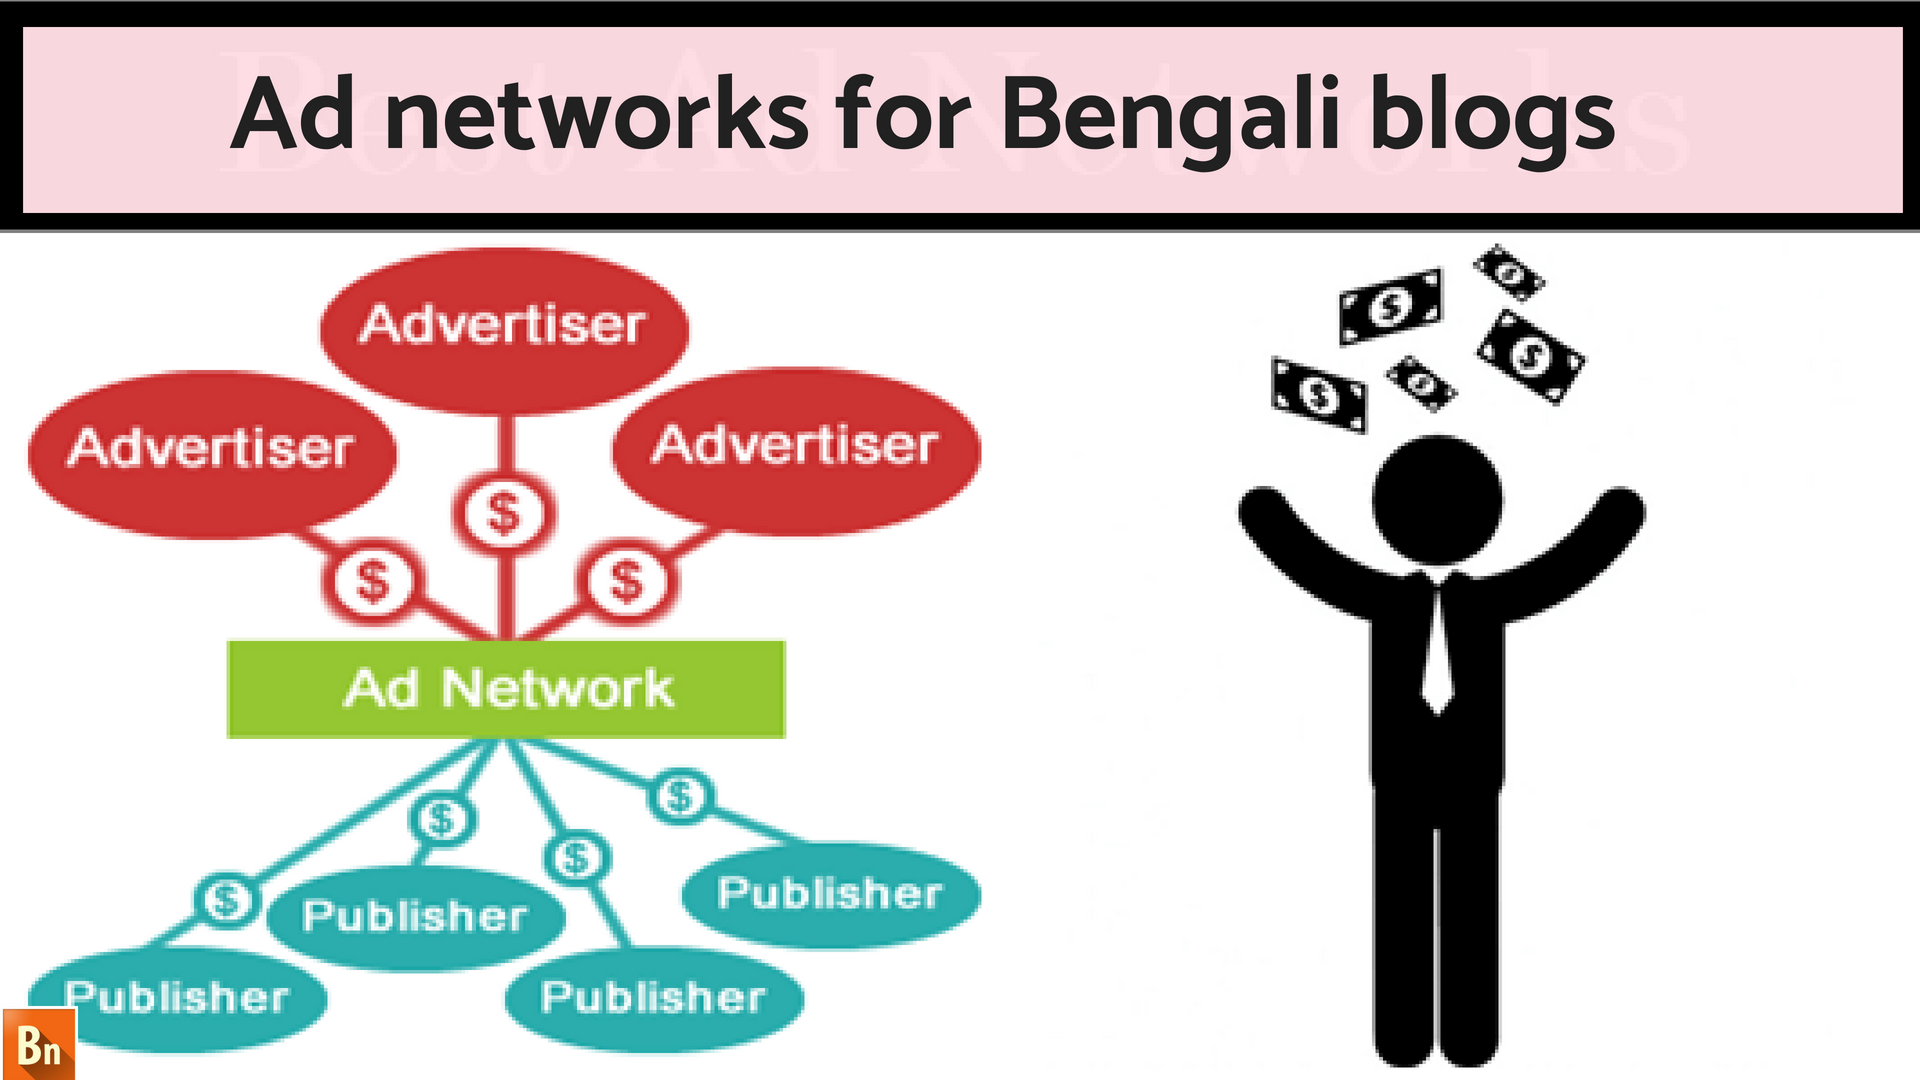 Best Ad Networks for Bengali Blogs 2020